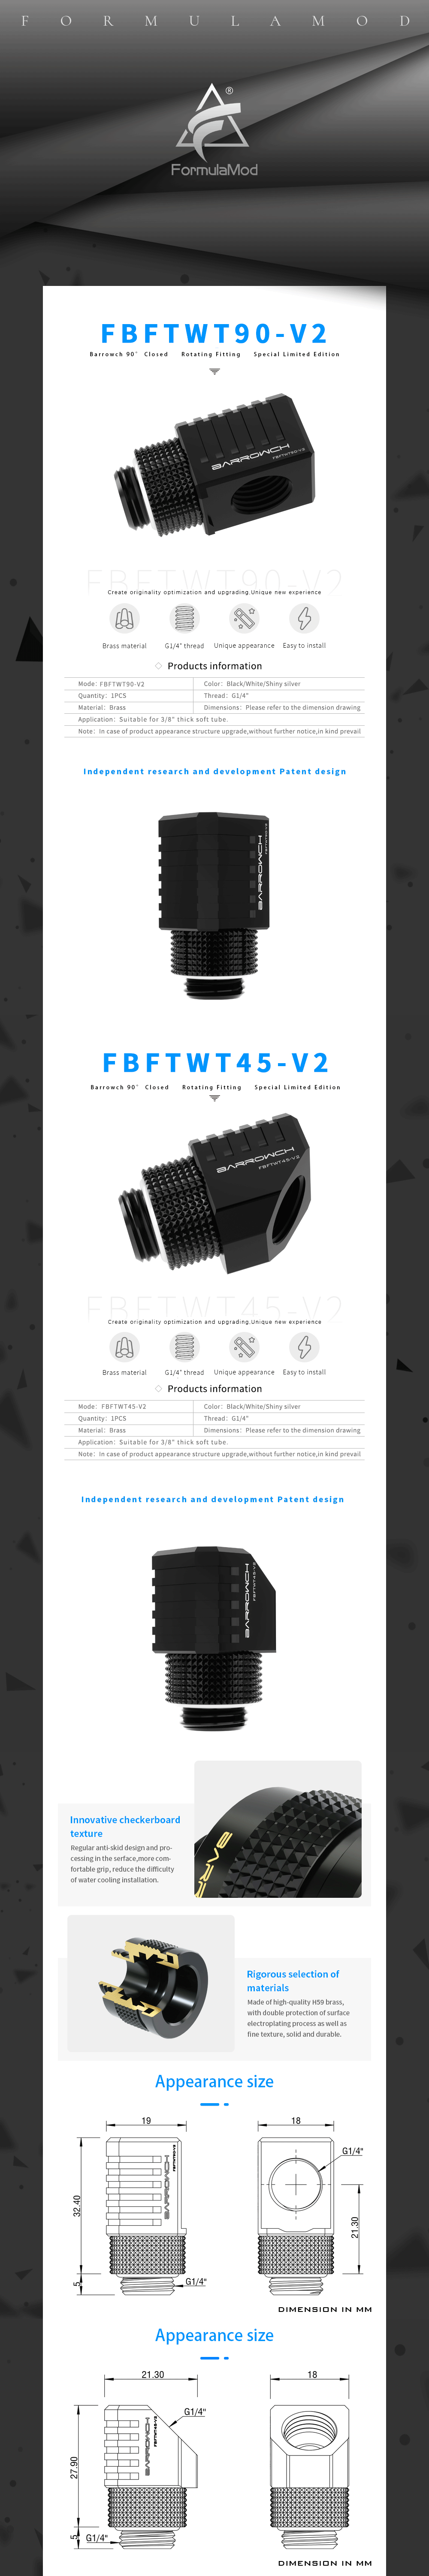 Barrowch 45 90 Degree Rotary Adapter Fitting, Limited Version for Water Cooling Tube Angled Fitting, FBFTWT 45/90-V2